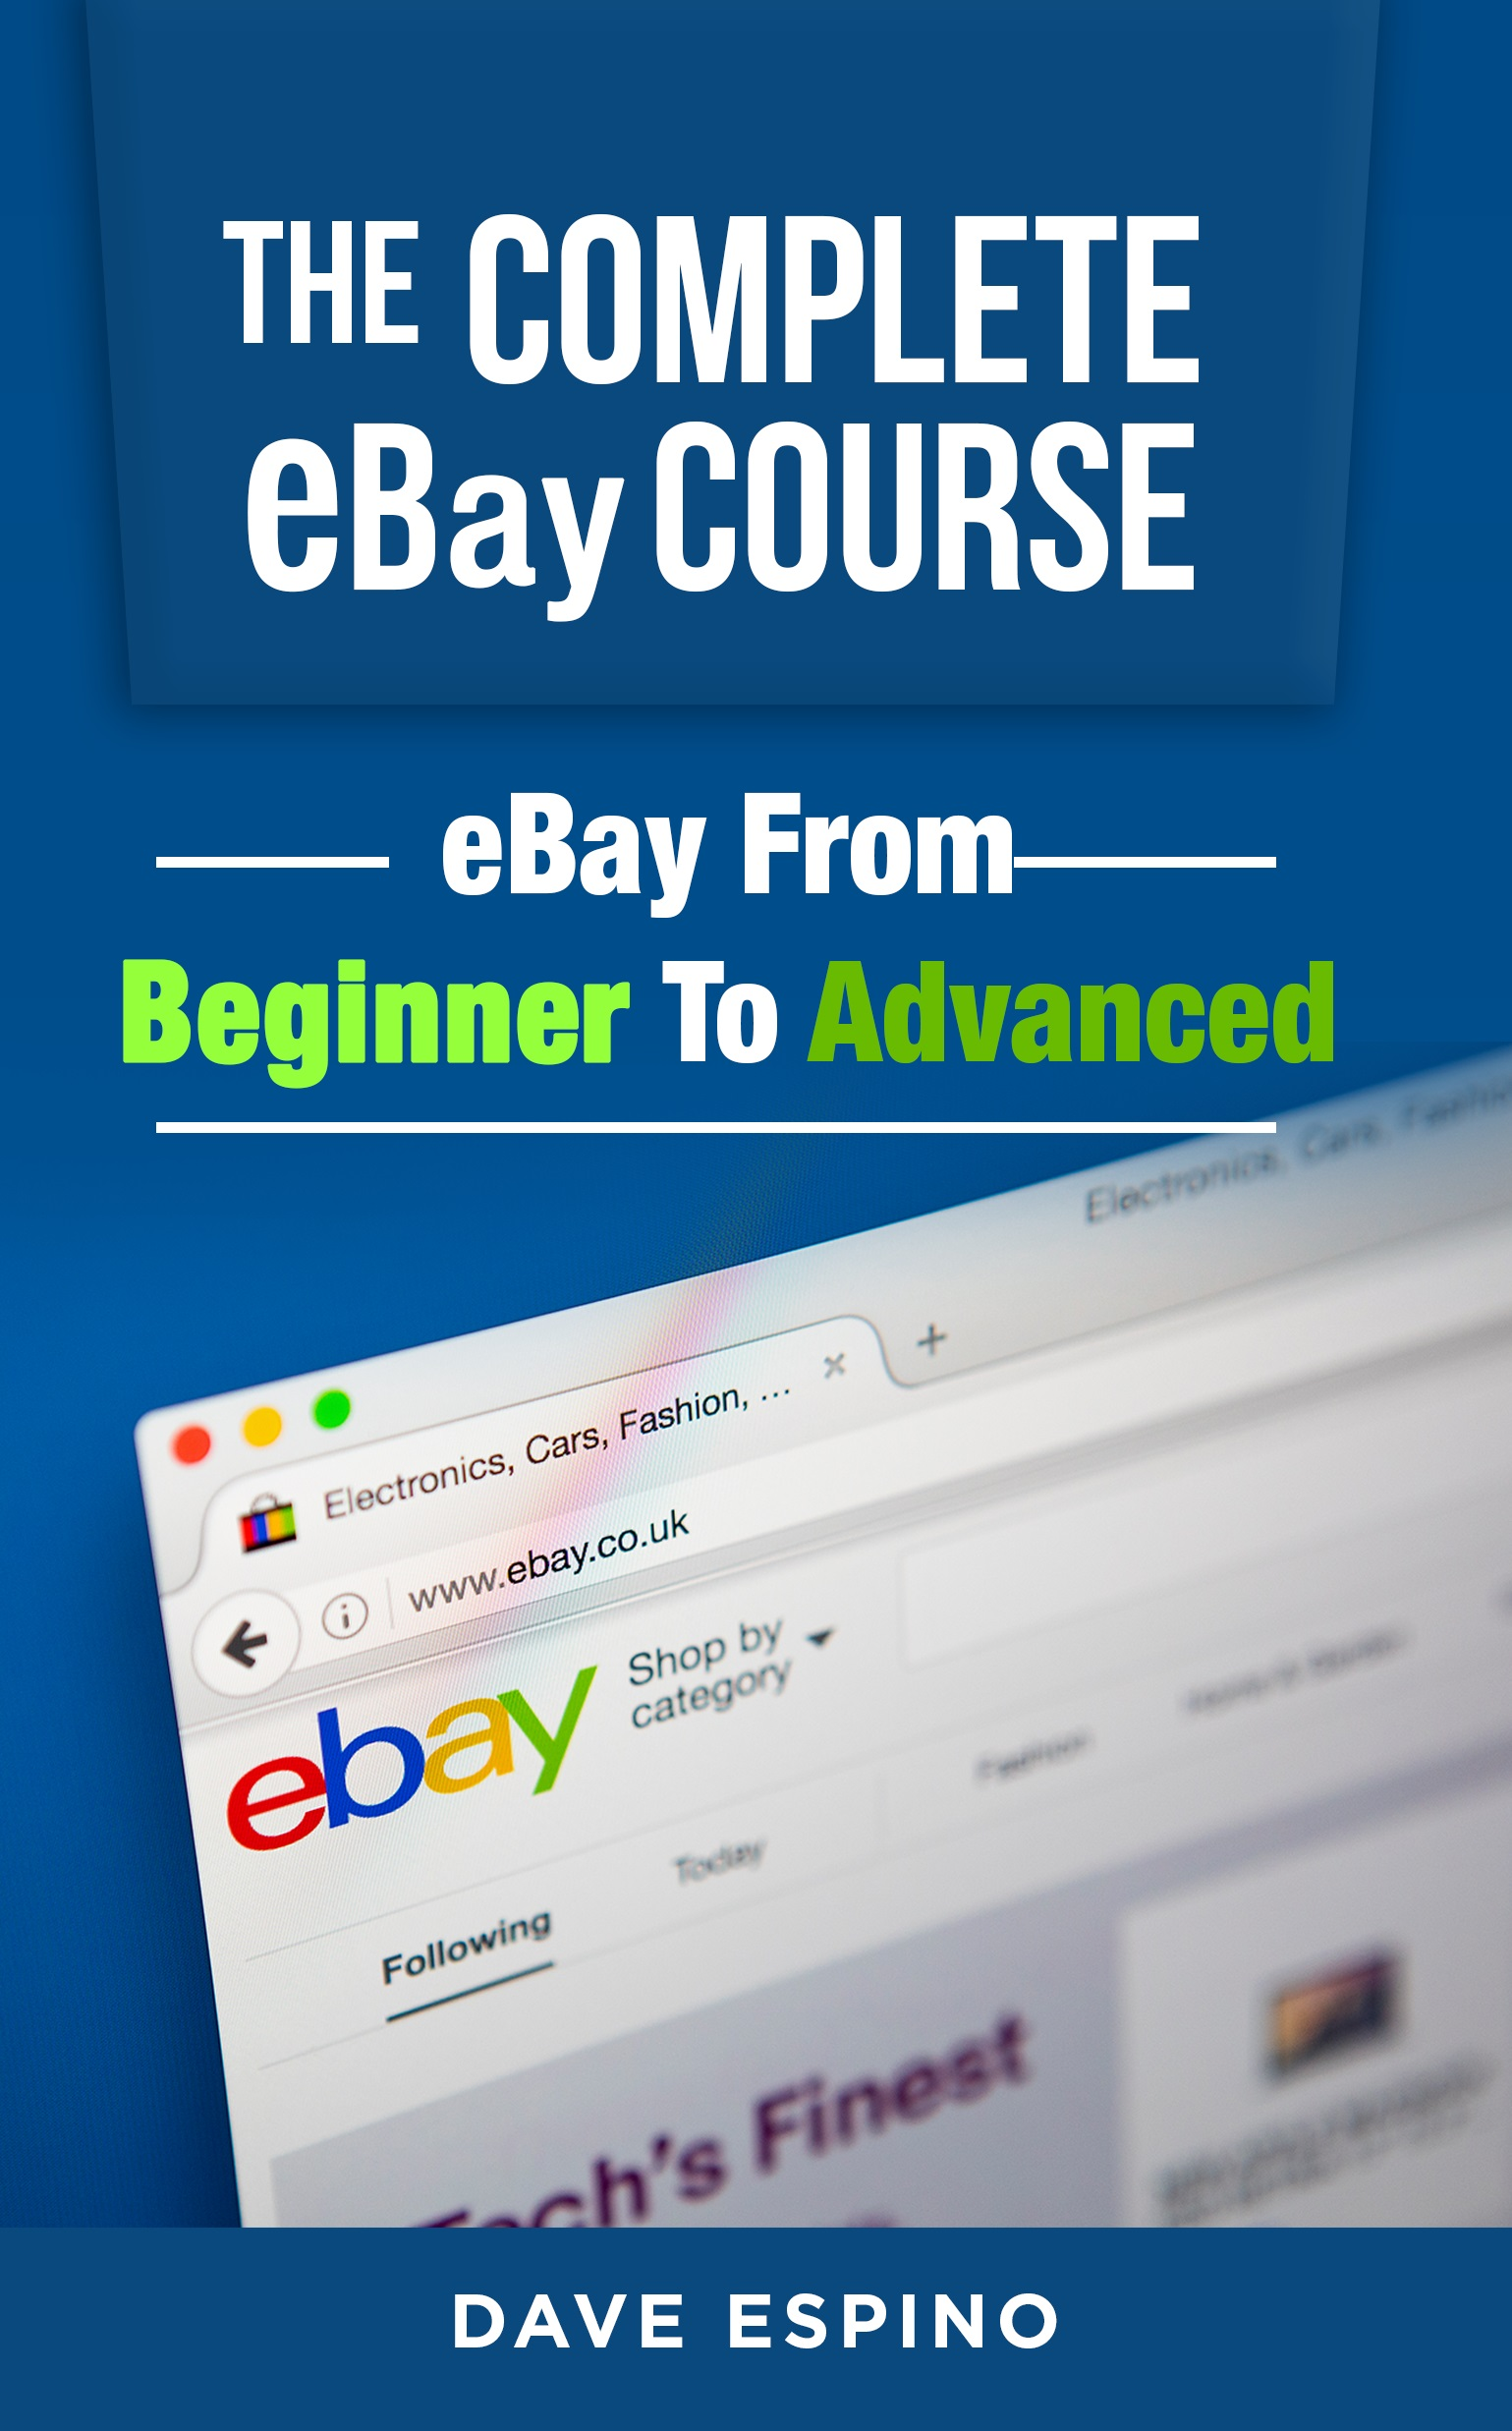 The Complete eBay Course - eBay From Beginner To Advanced (Online Video Course) [Online Code] by Dave Espino